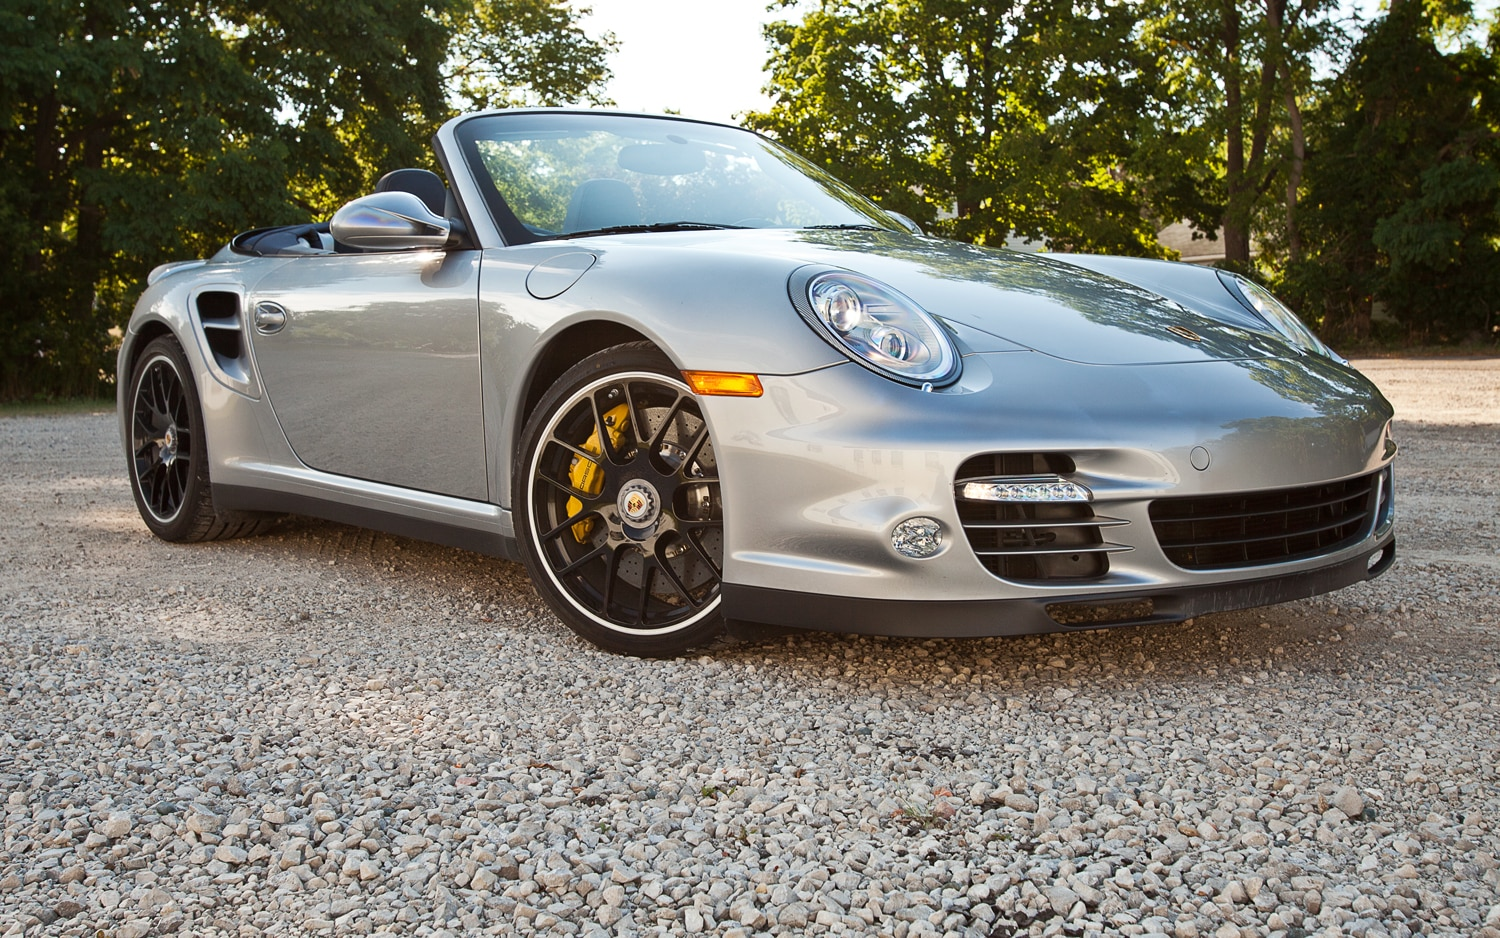 2012 Porsche 911 Turbo S Cabriolet Front Right View 41